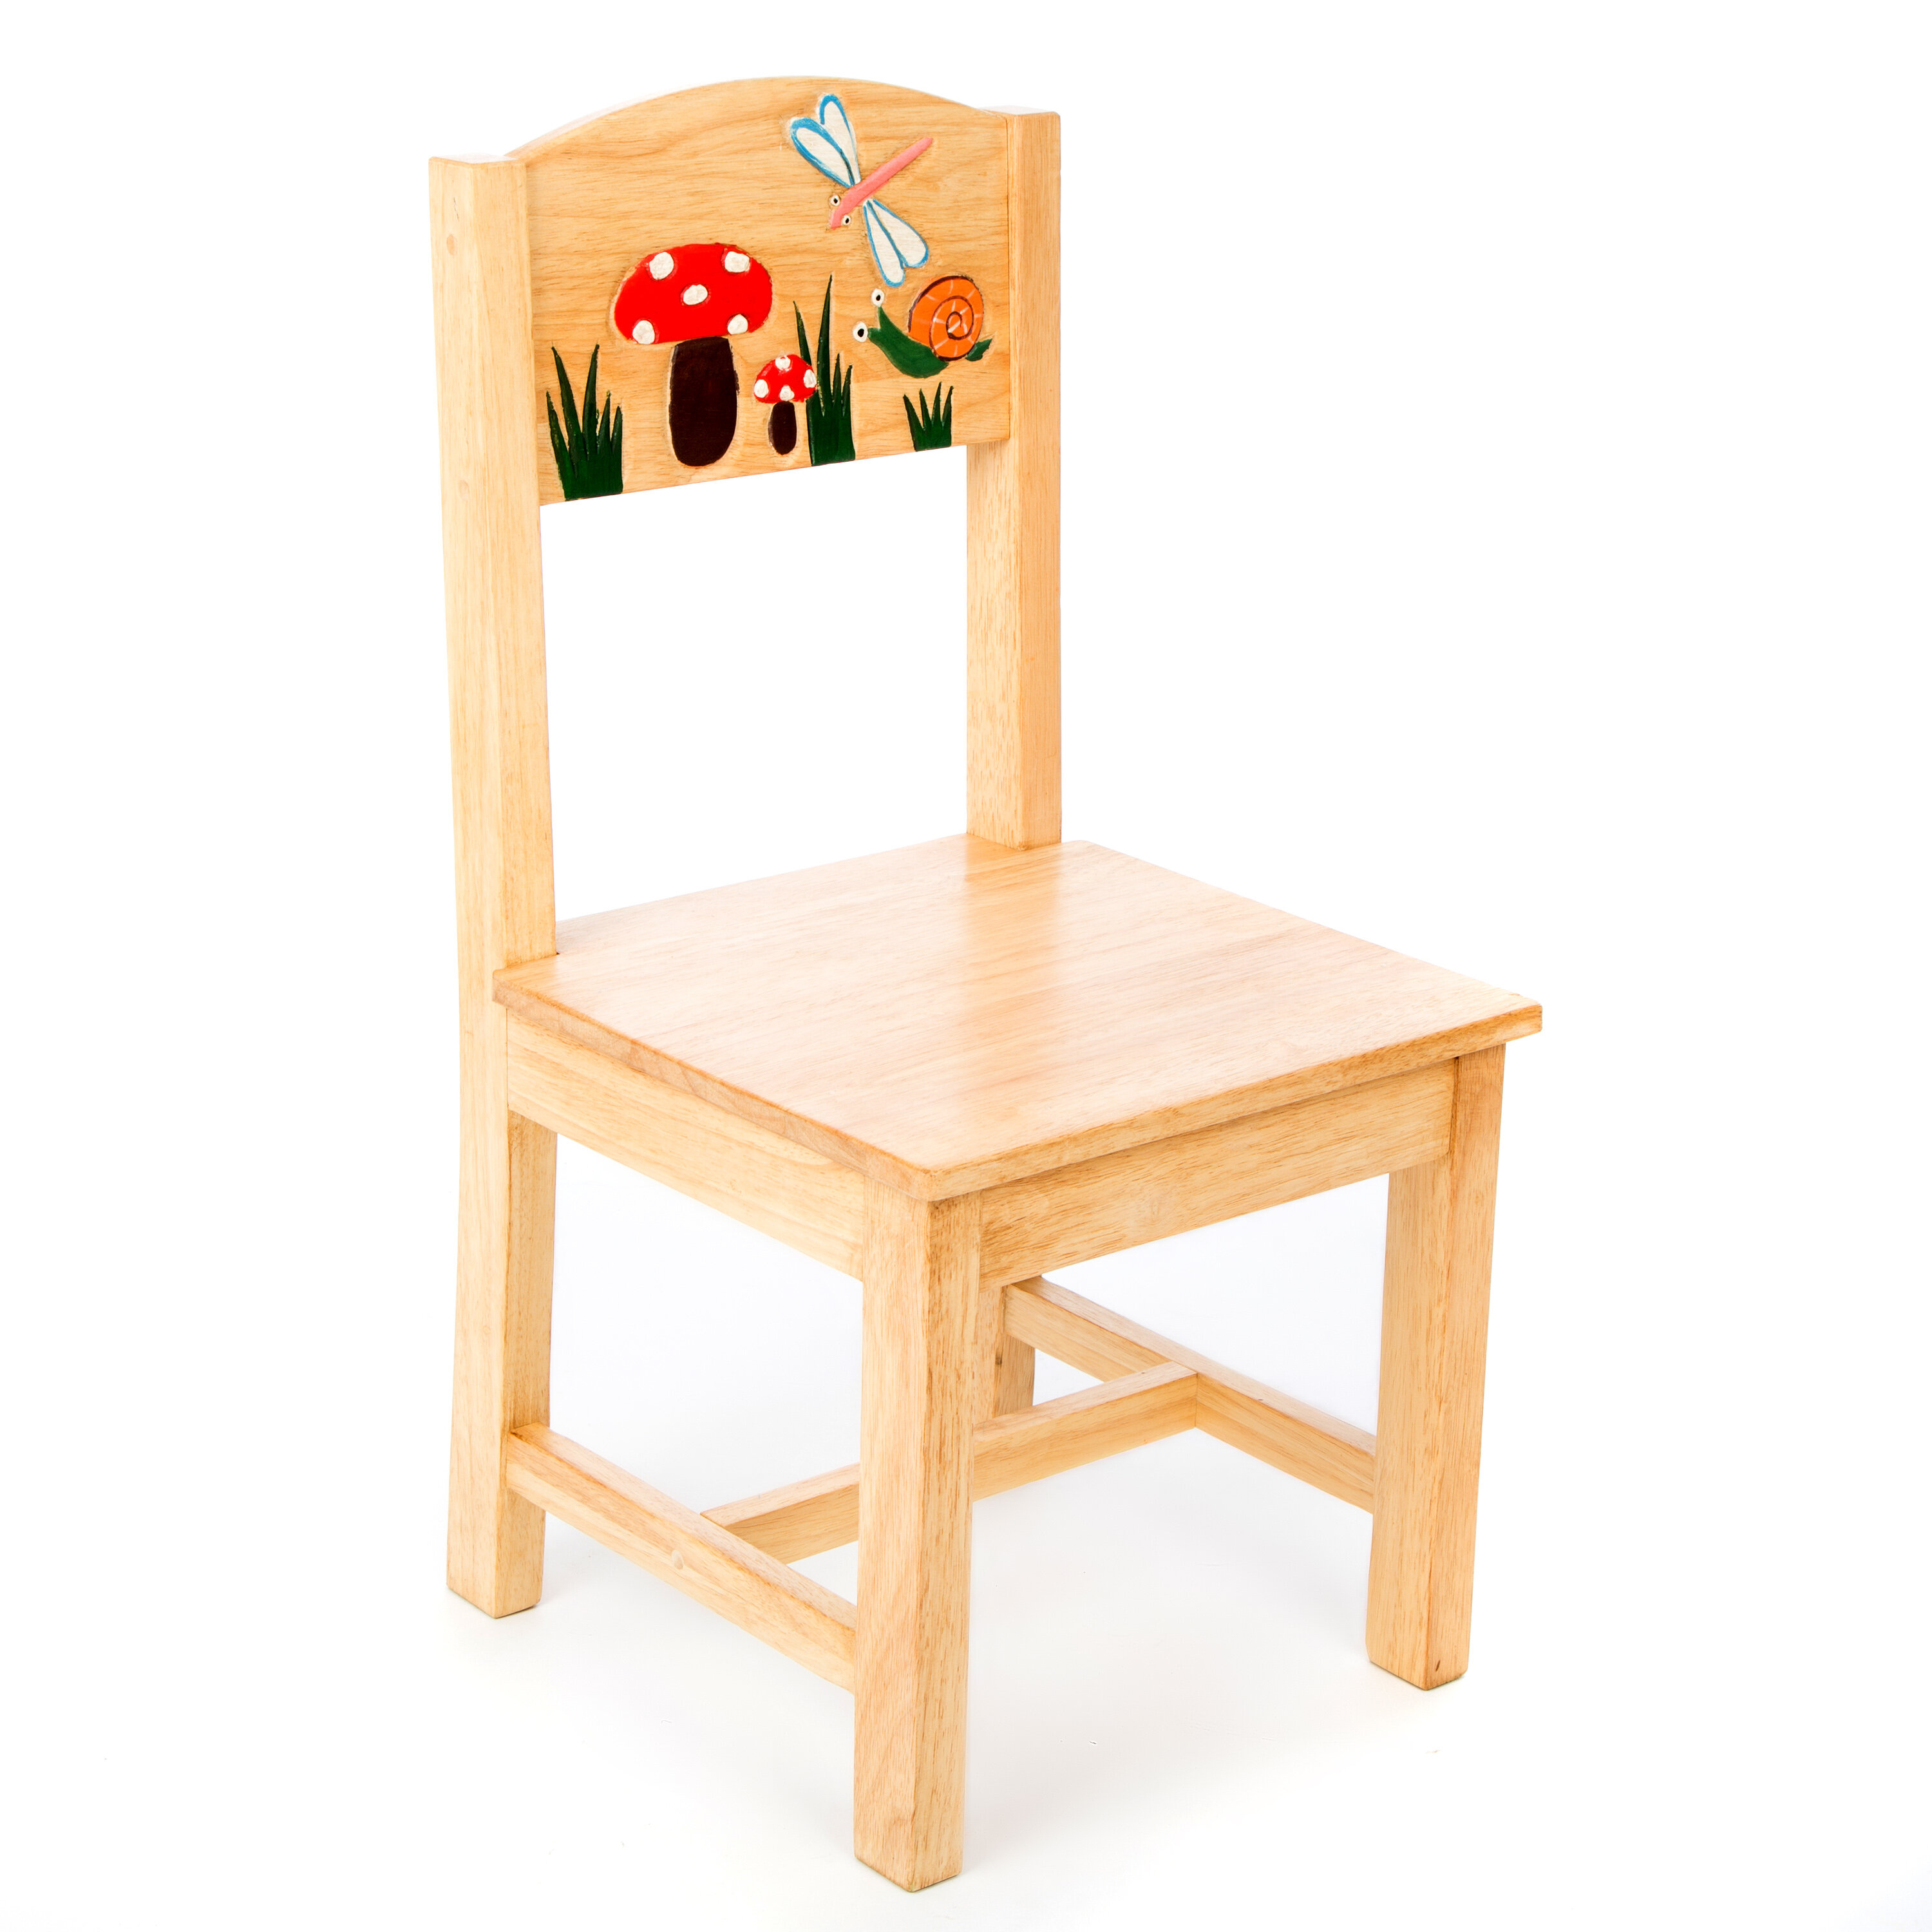 Tremendous Forest Mushroom Childrens Desk Chair Gmtry Best Dining Table And Chair Ideas Images Gmtryco